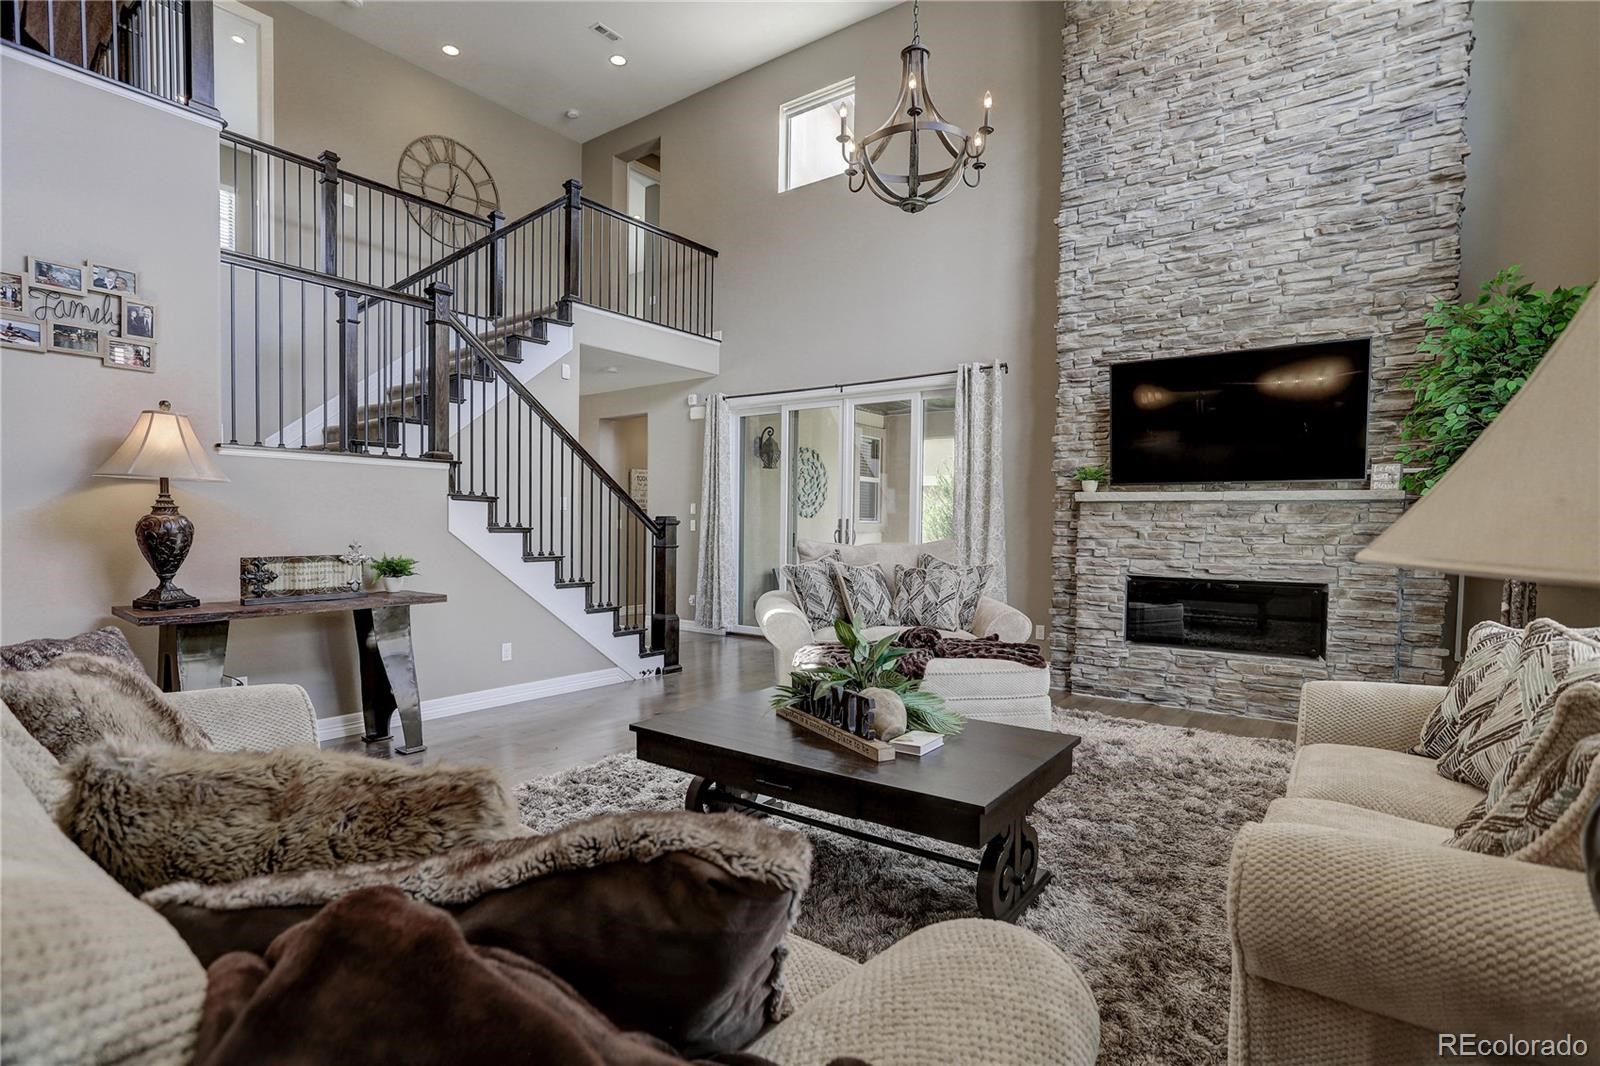 MLS# 8360577 - 6 - 2247 S Isabell Court, Lakewood, CO 80228